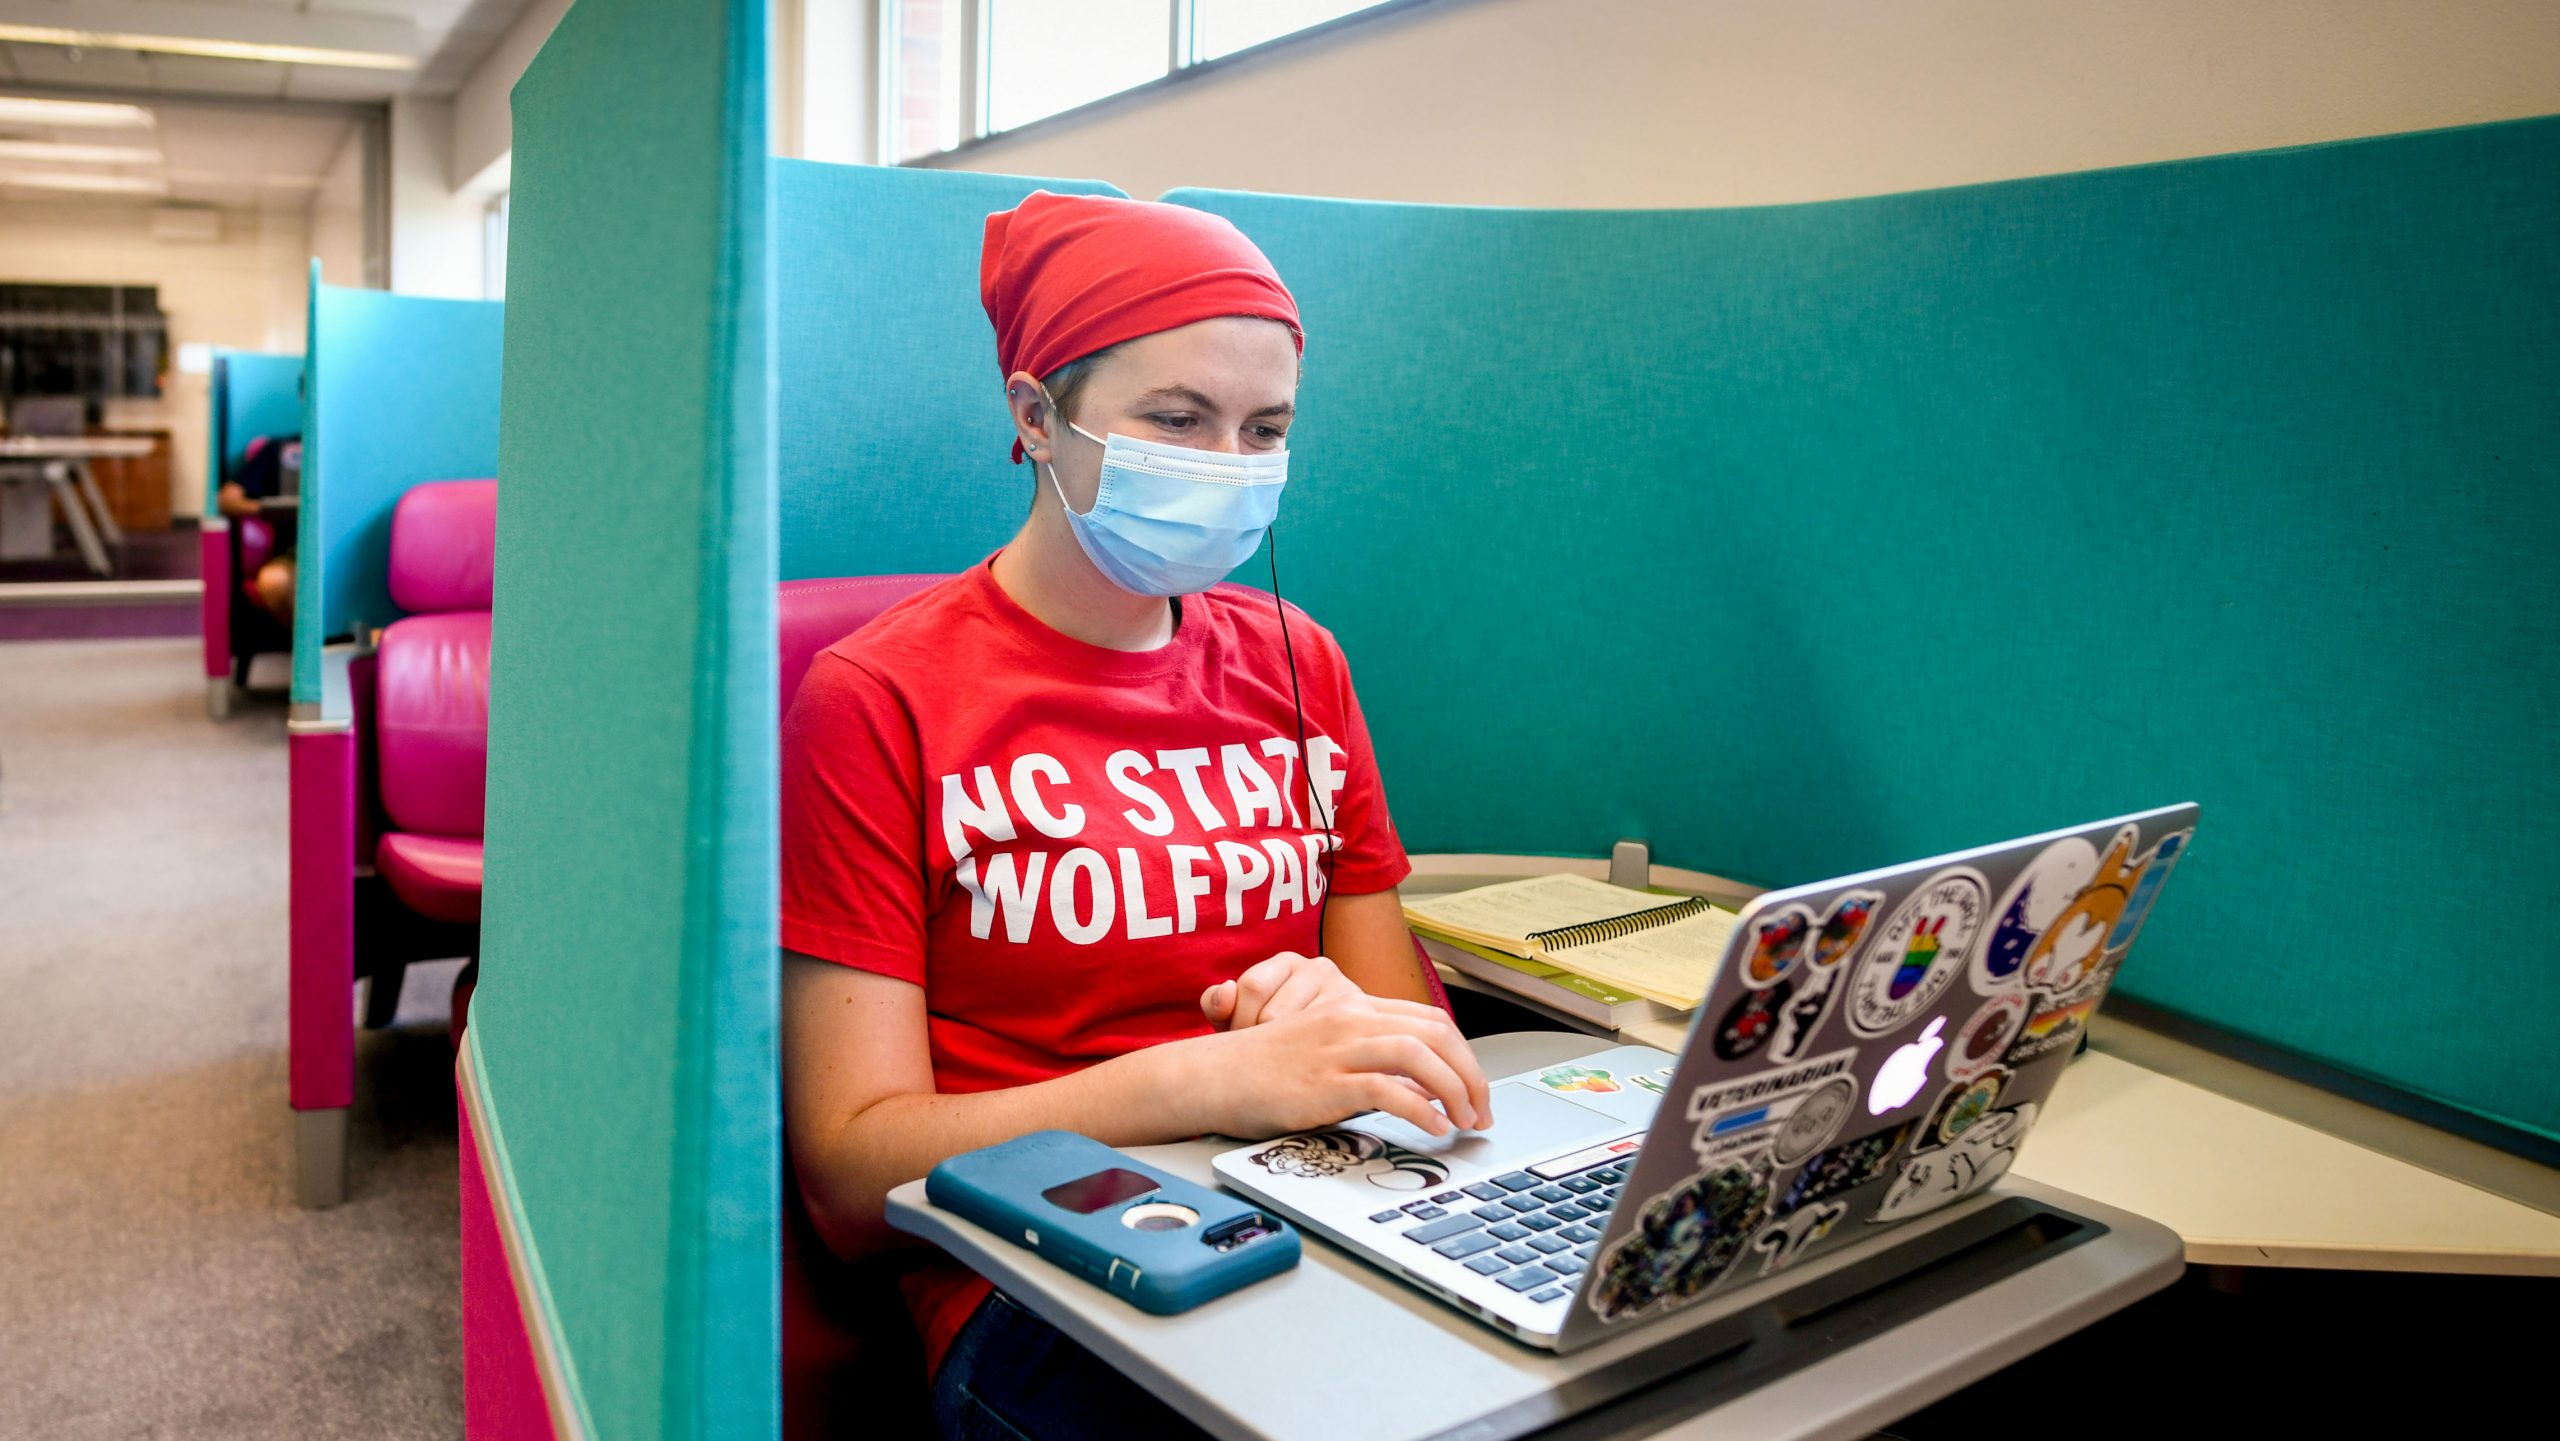 A student wearing a face mask and an NCState t-shirt studies in a blue chair in the Hill Library.